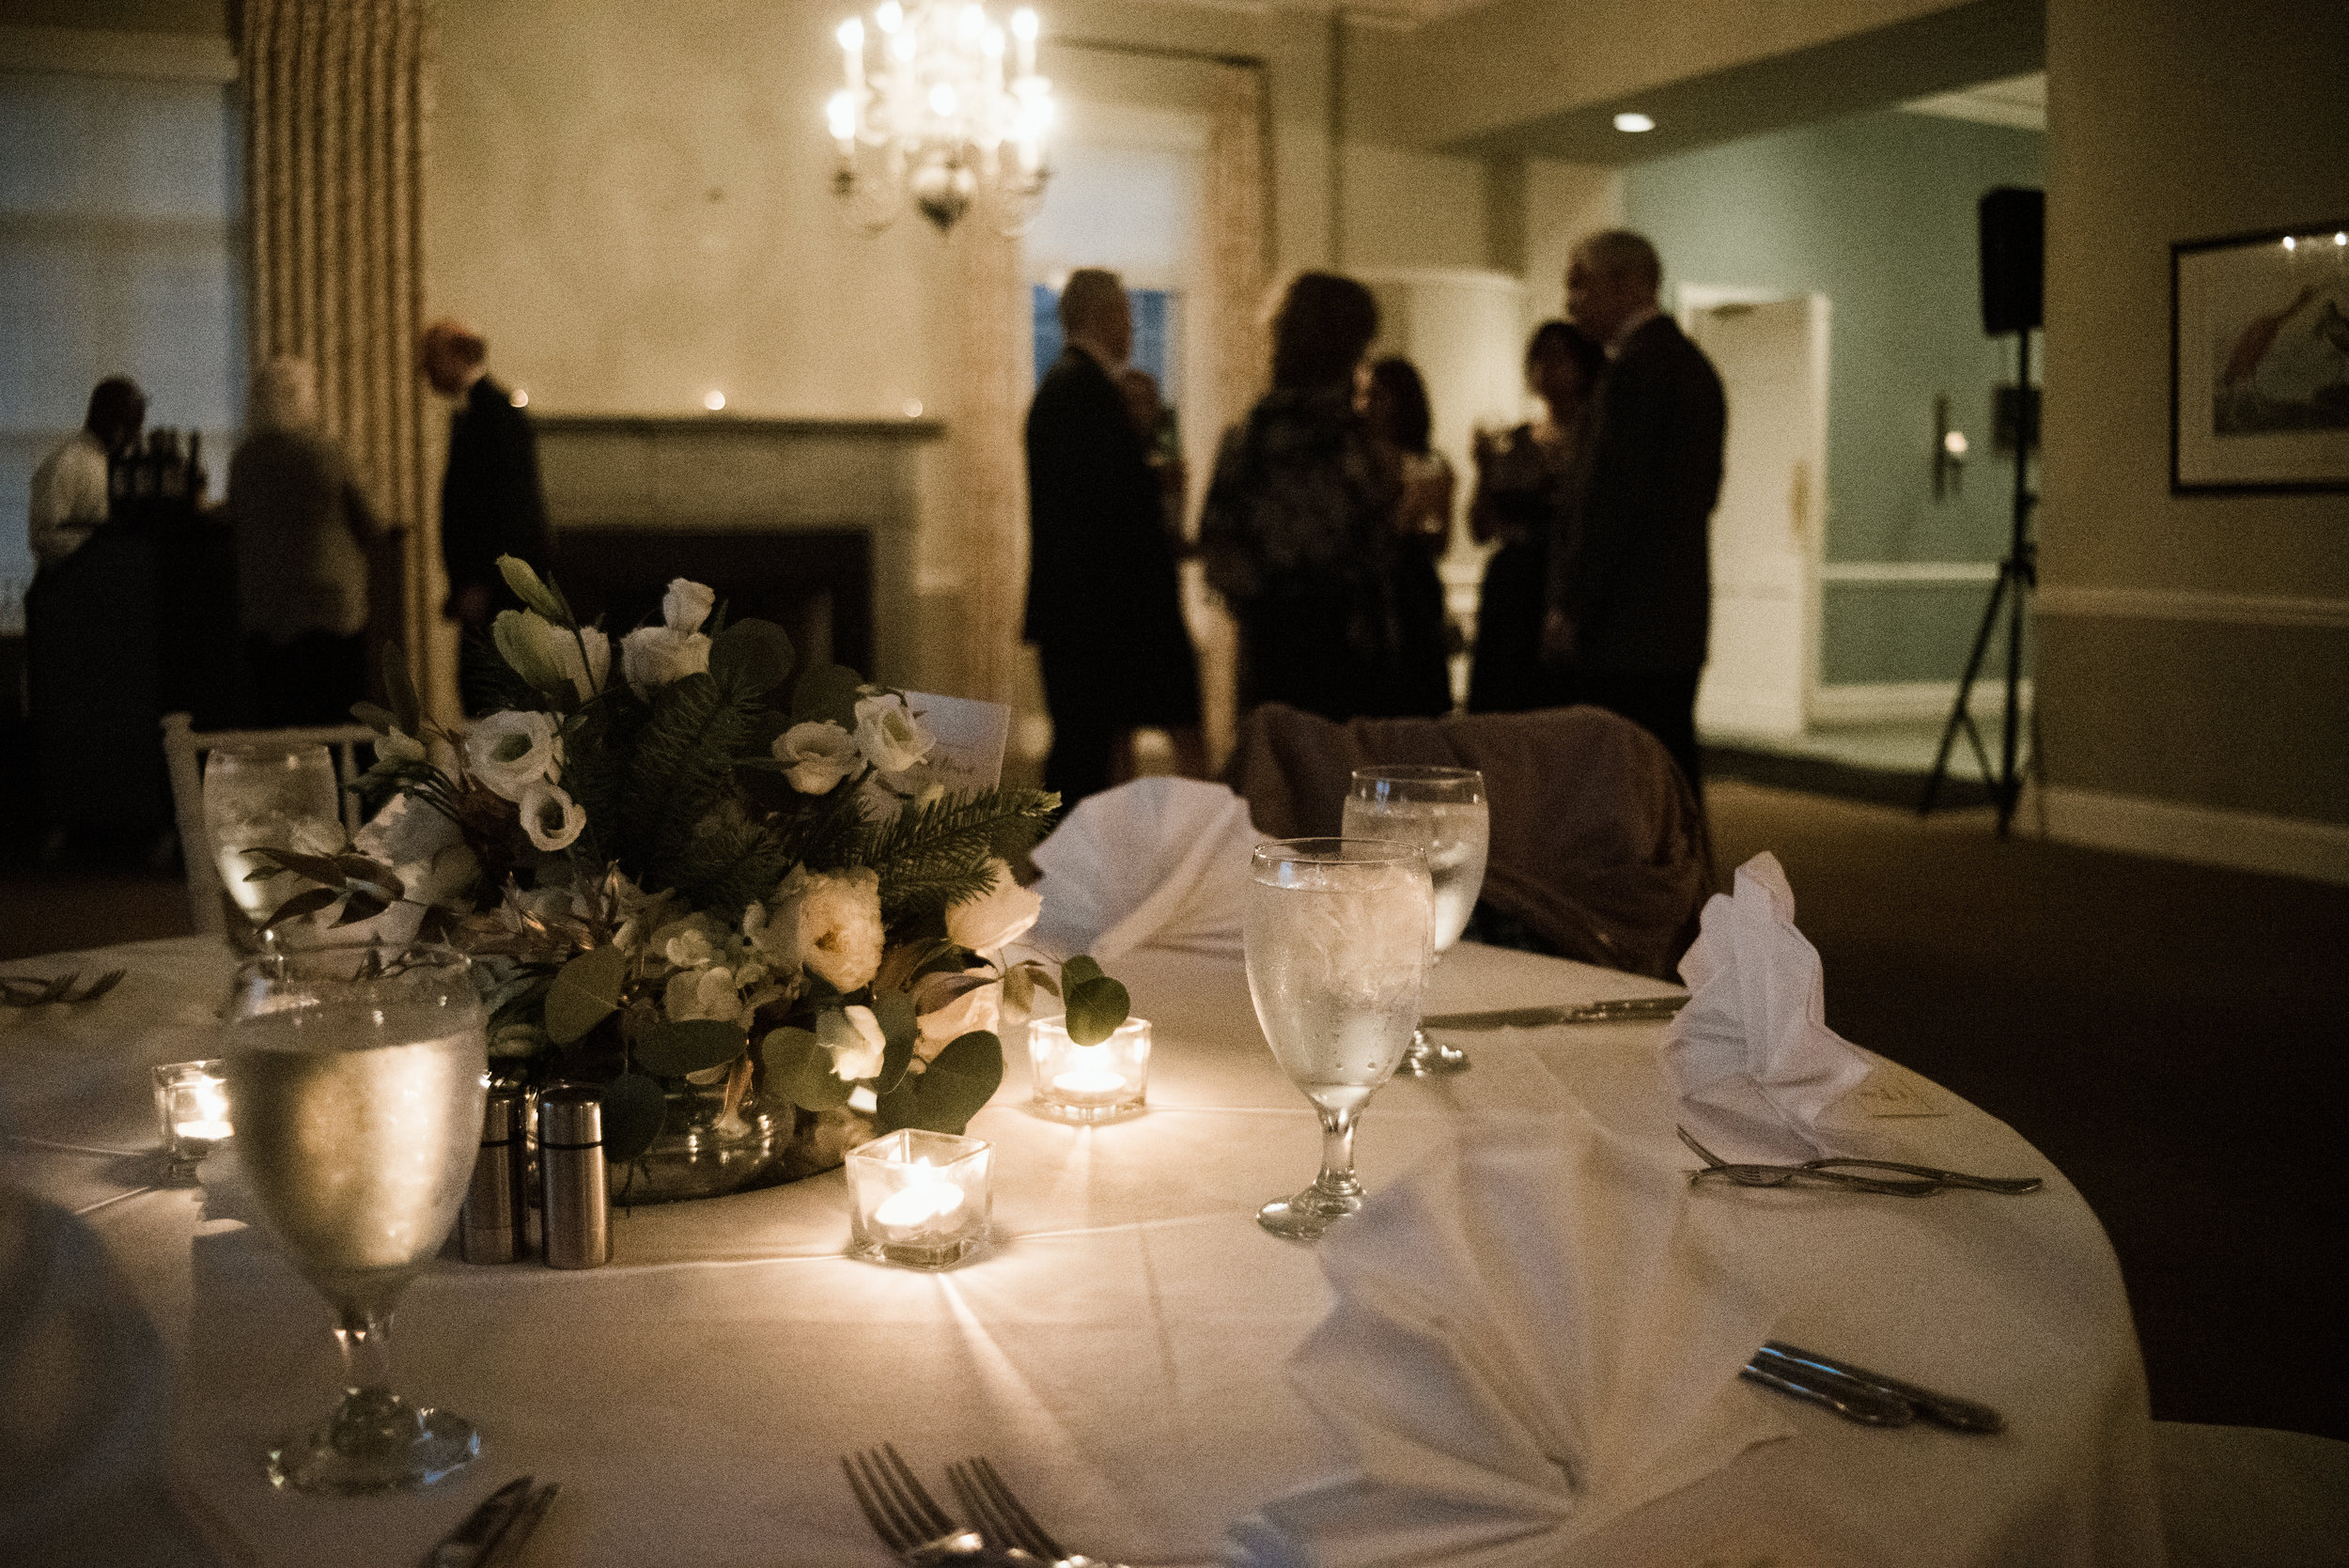 emily-and-david-daufuskie-island-wedding-december-wedding-meg-hill-photo- (621 of 728).jpg